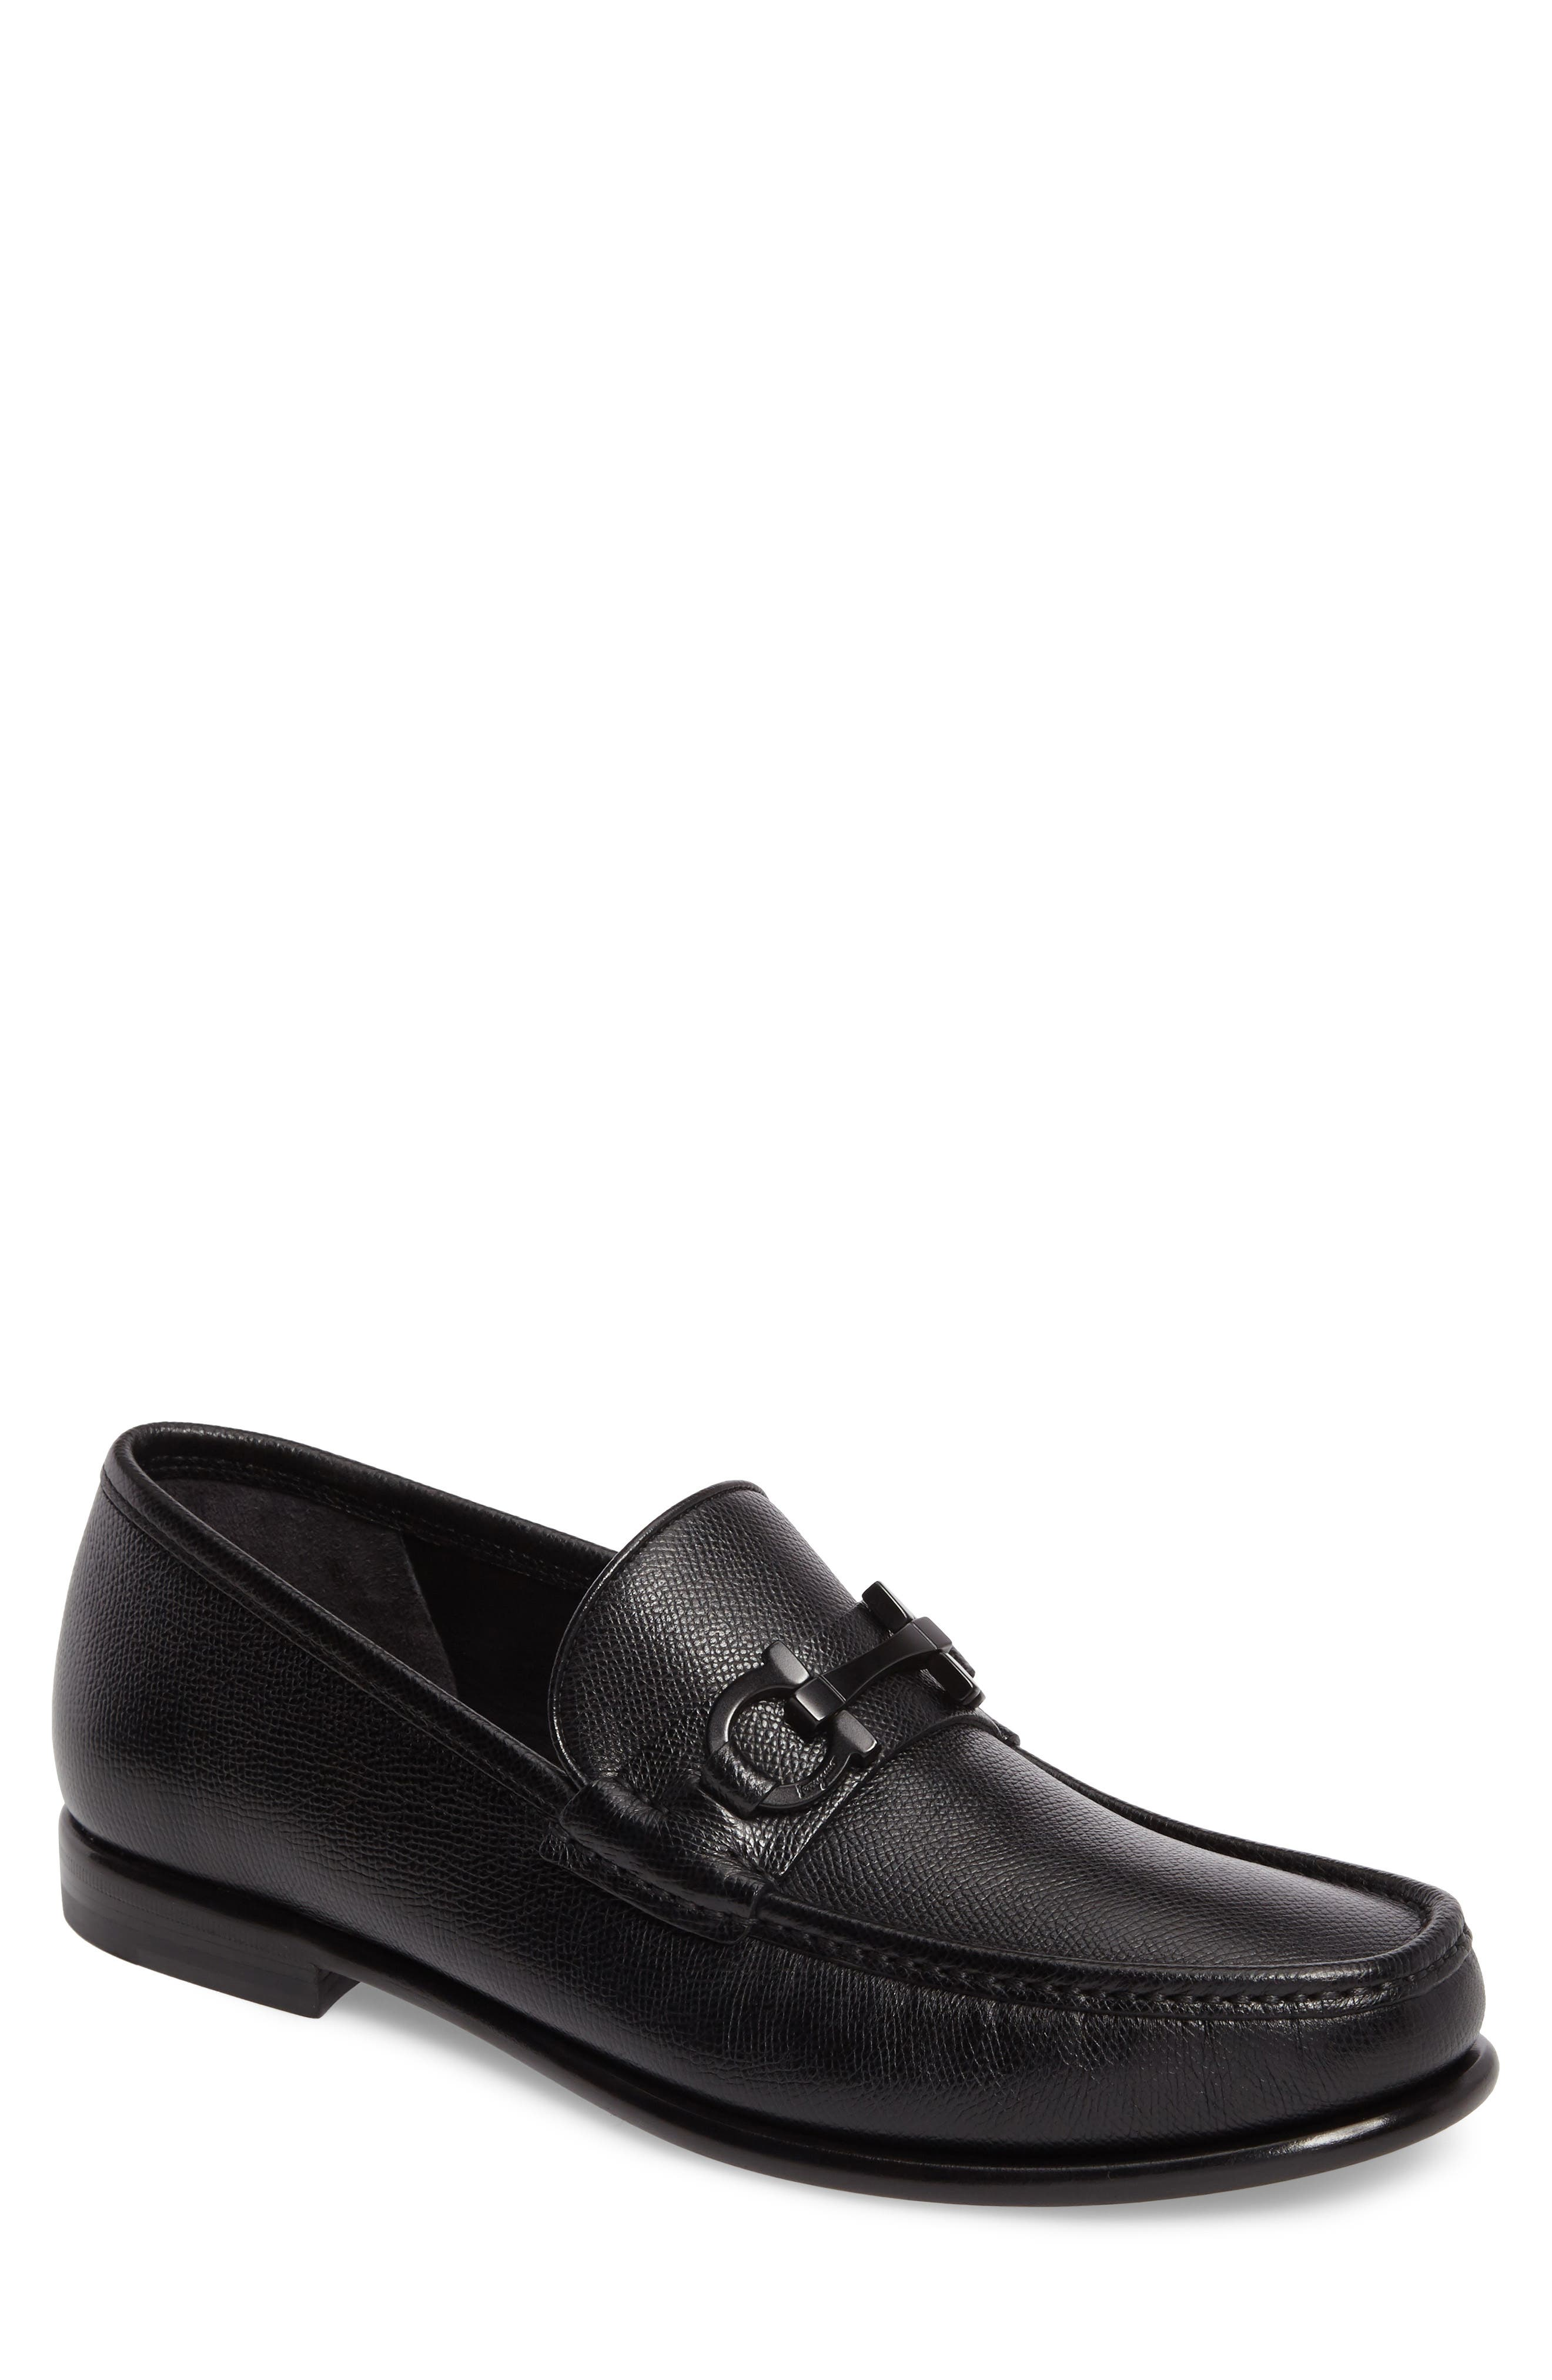 Crown Bit Loafer,                             Main thumbnail 1, color,                             Nero